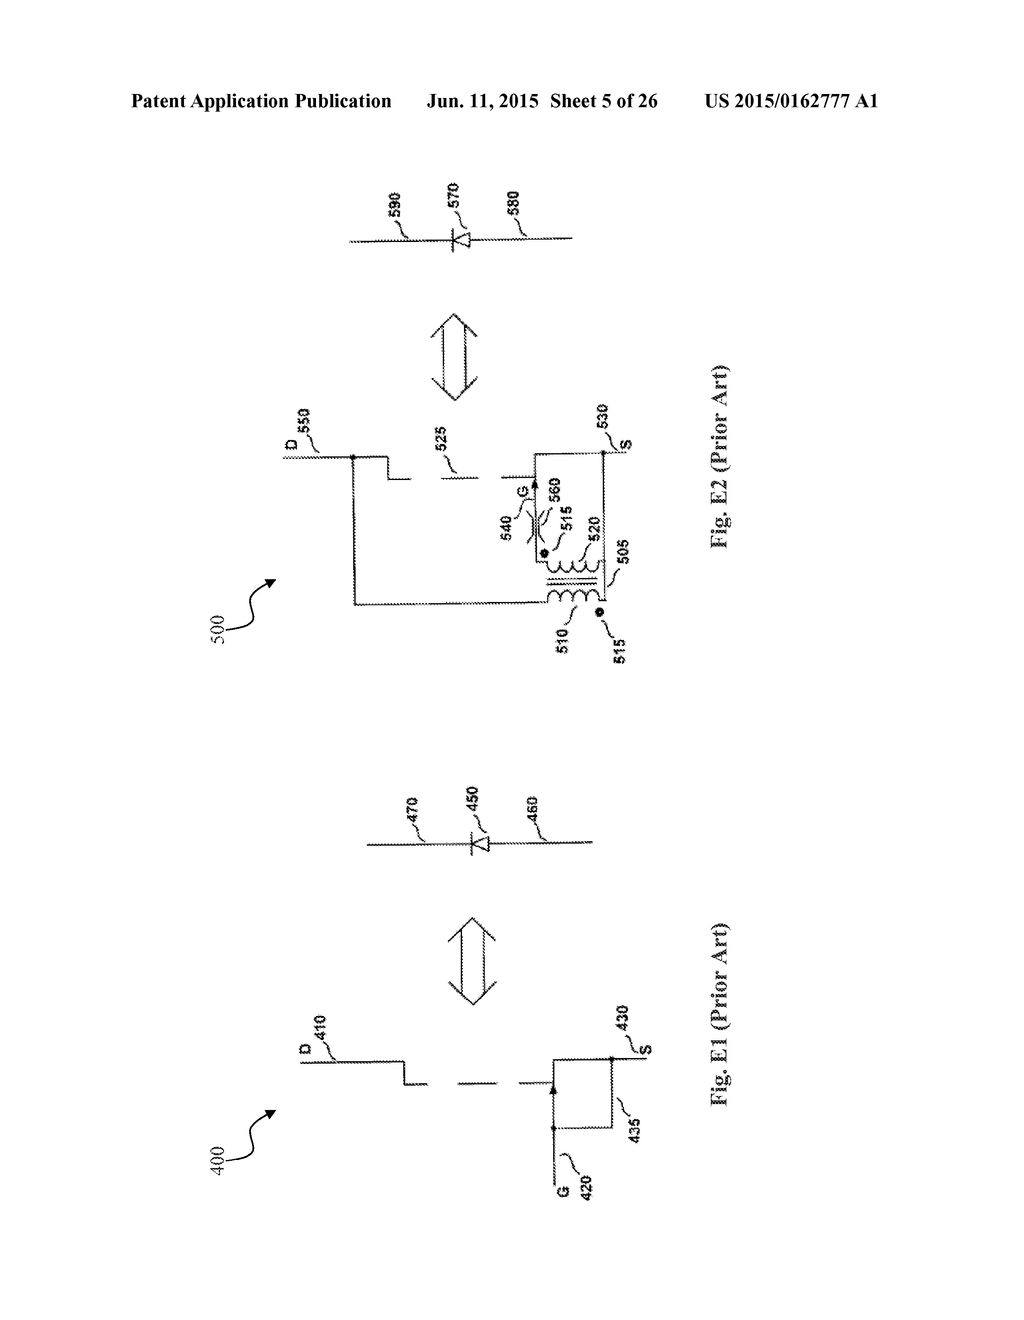 Battery Charging Circuit with Serial Connection of MOSFET and An  Enhancement Mode JFET Configured as Reverse Blocking Diode with Low Forward  Voltage Drop ...